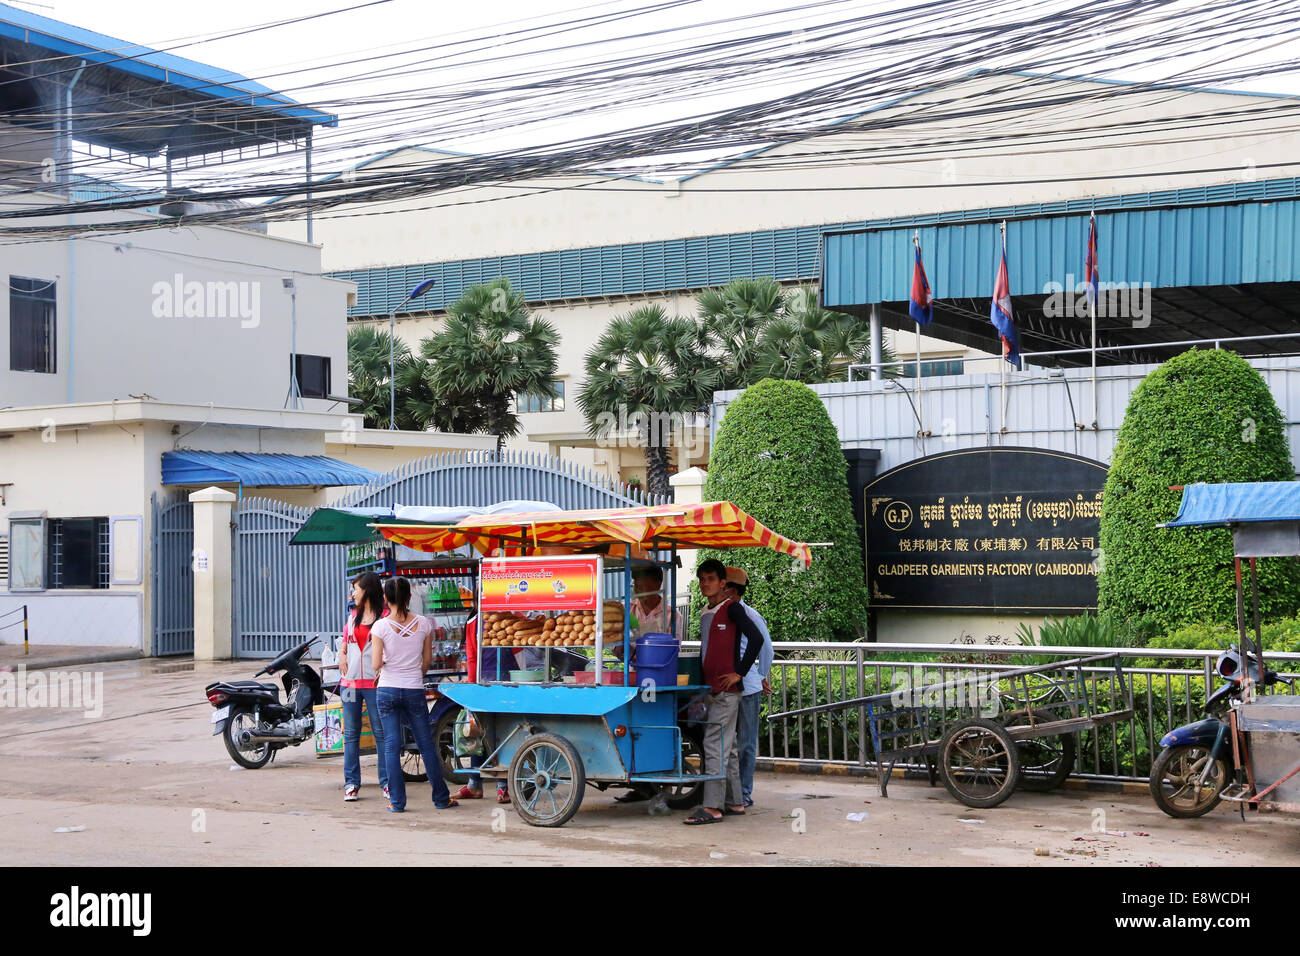 gate of a textile factory in the Pochentong industrial area in Phnom Penh, Cambodia. - Stock Image